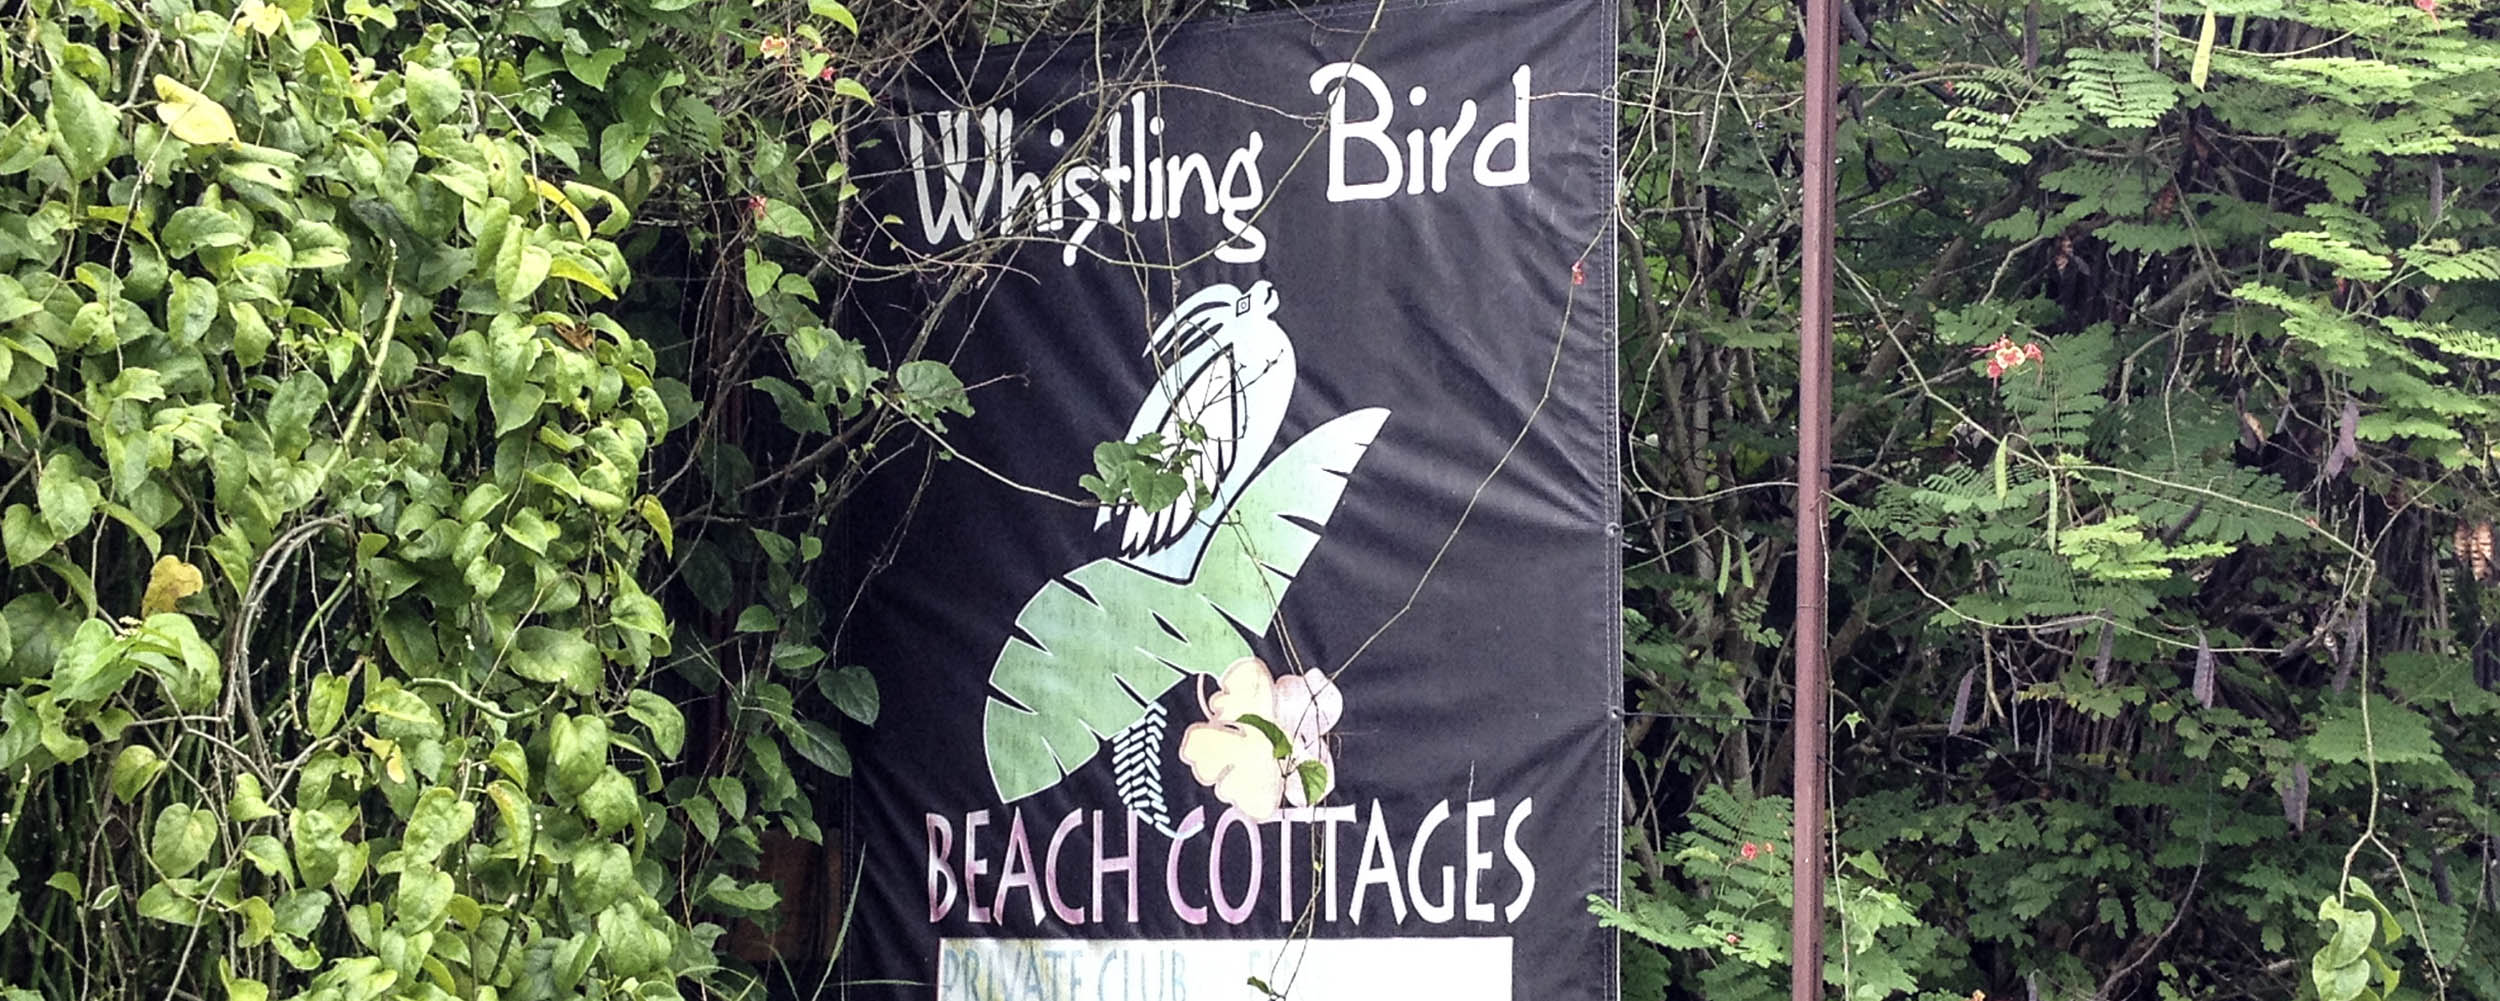 Whistling Bird Beach Cottages - Negril Jamaica